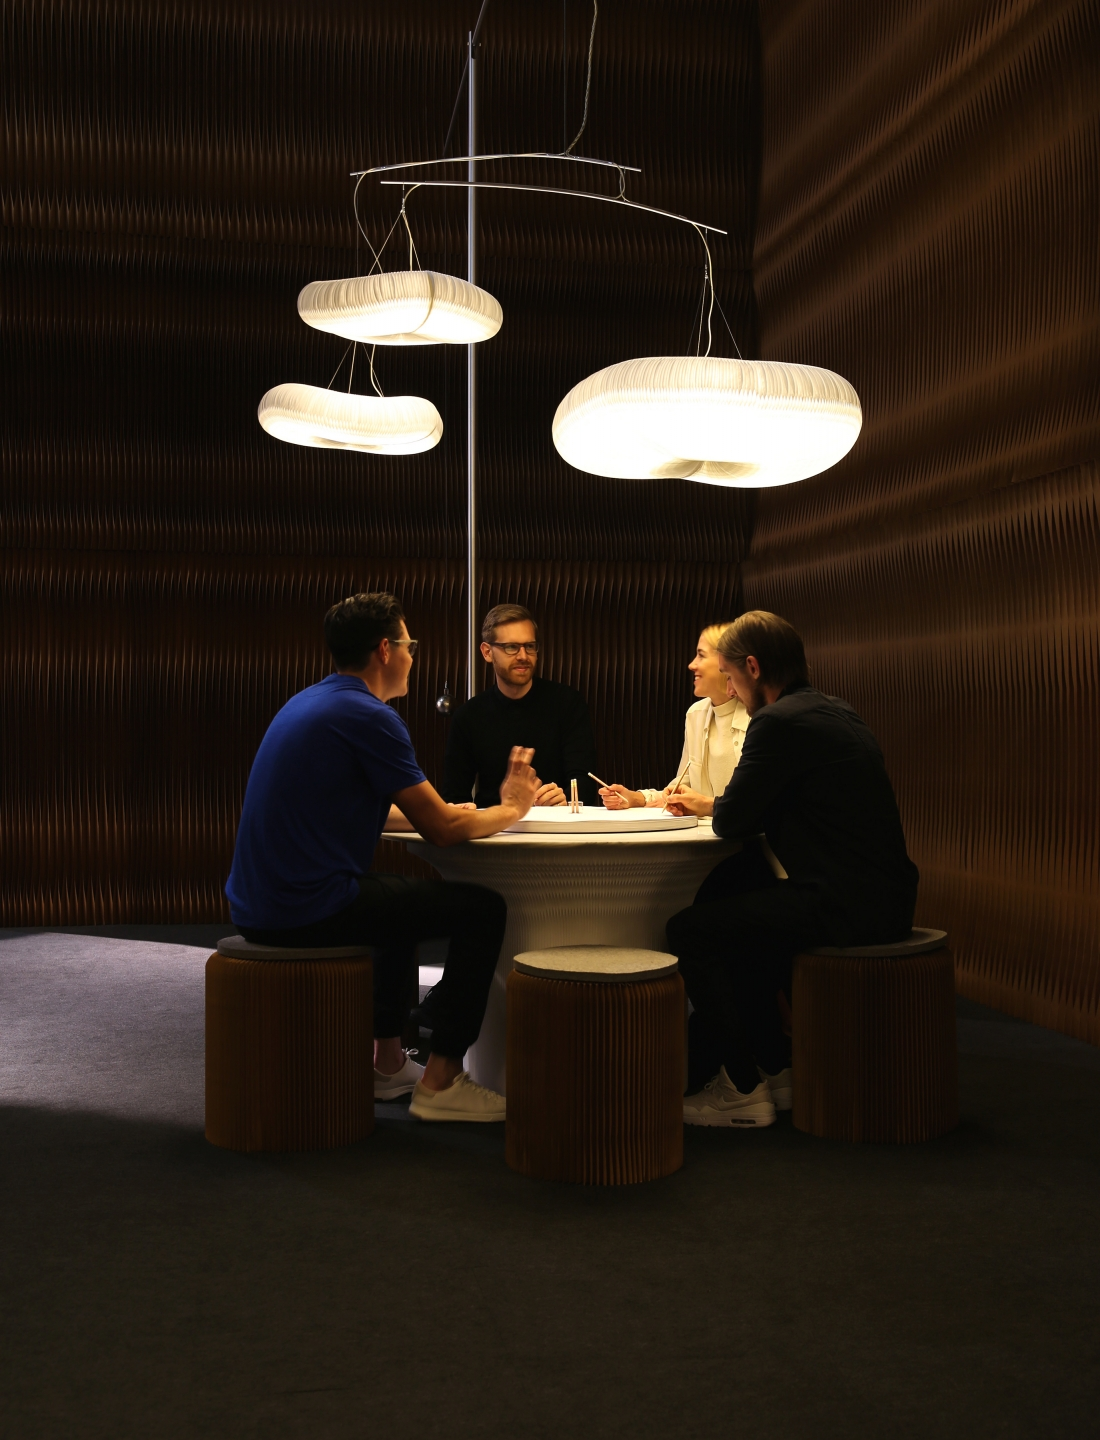 paper lighting and accordion paper furniture by molo - a table of people chats animatedly below cloud mast